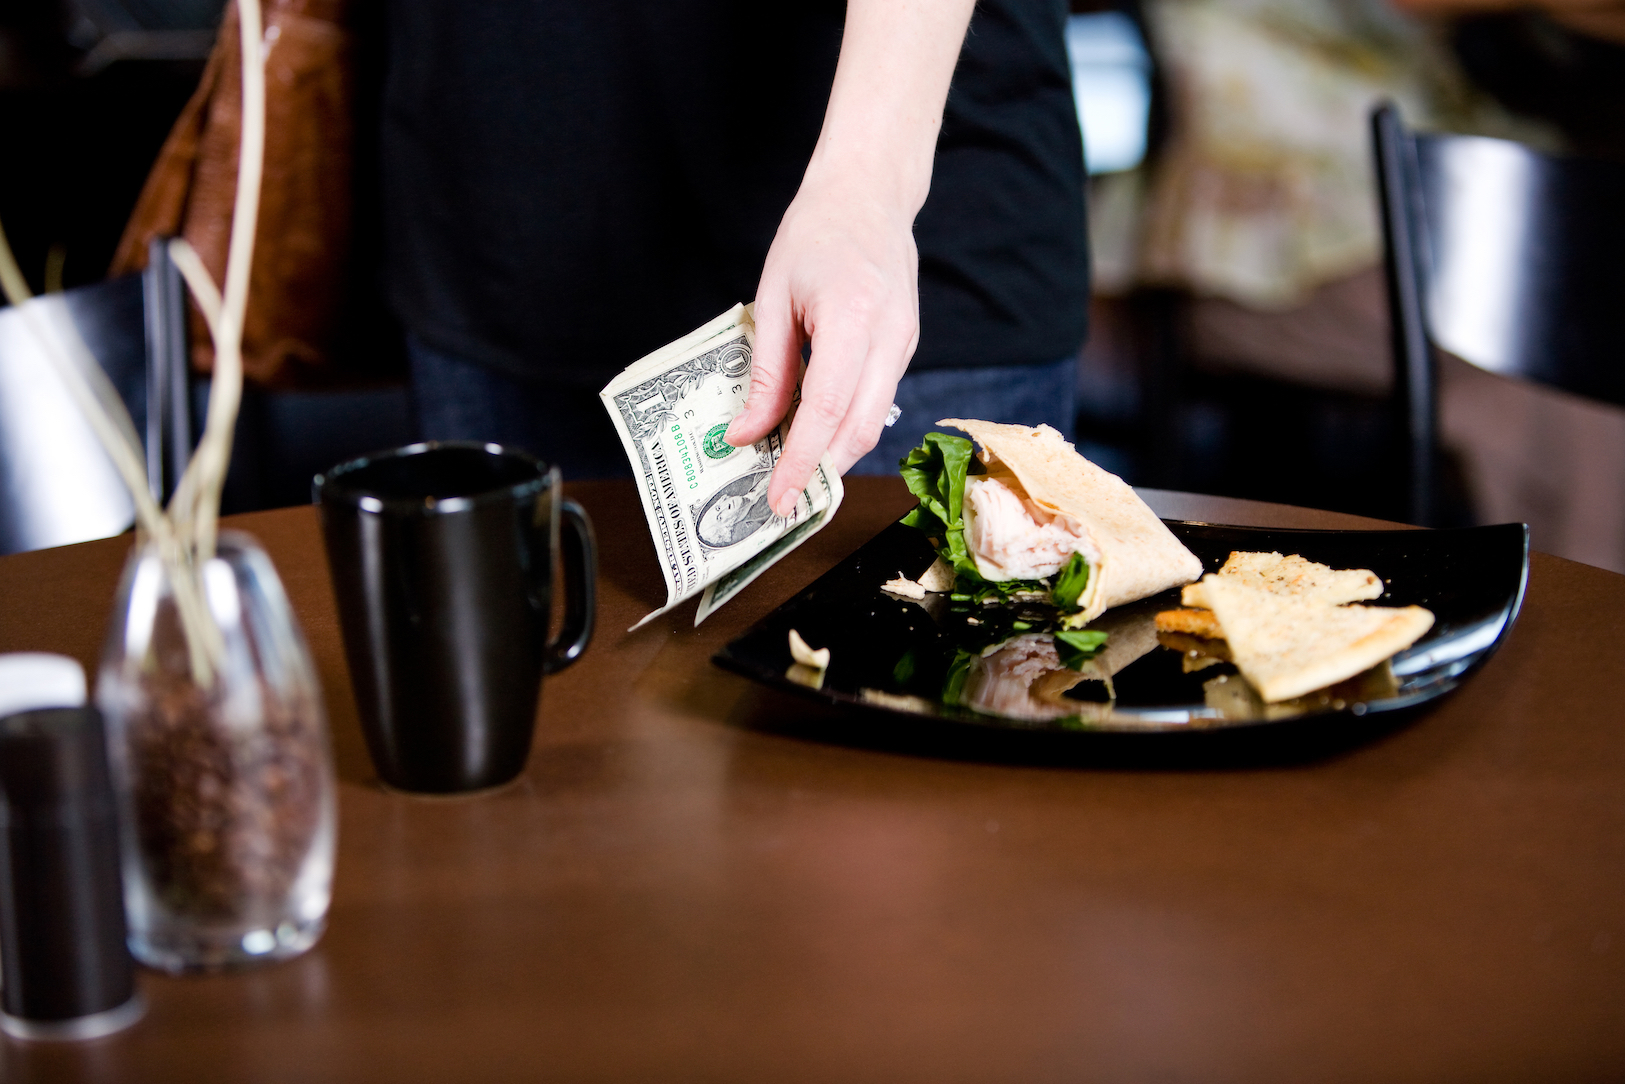 Tipping improves customer satisfaction and allows restaurants to keep menu prices lower than if they had an inclusive pricing system.